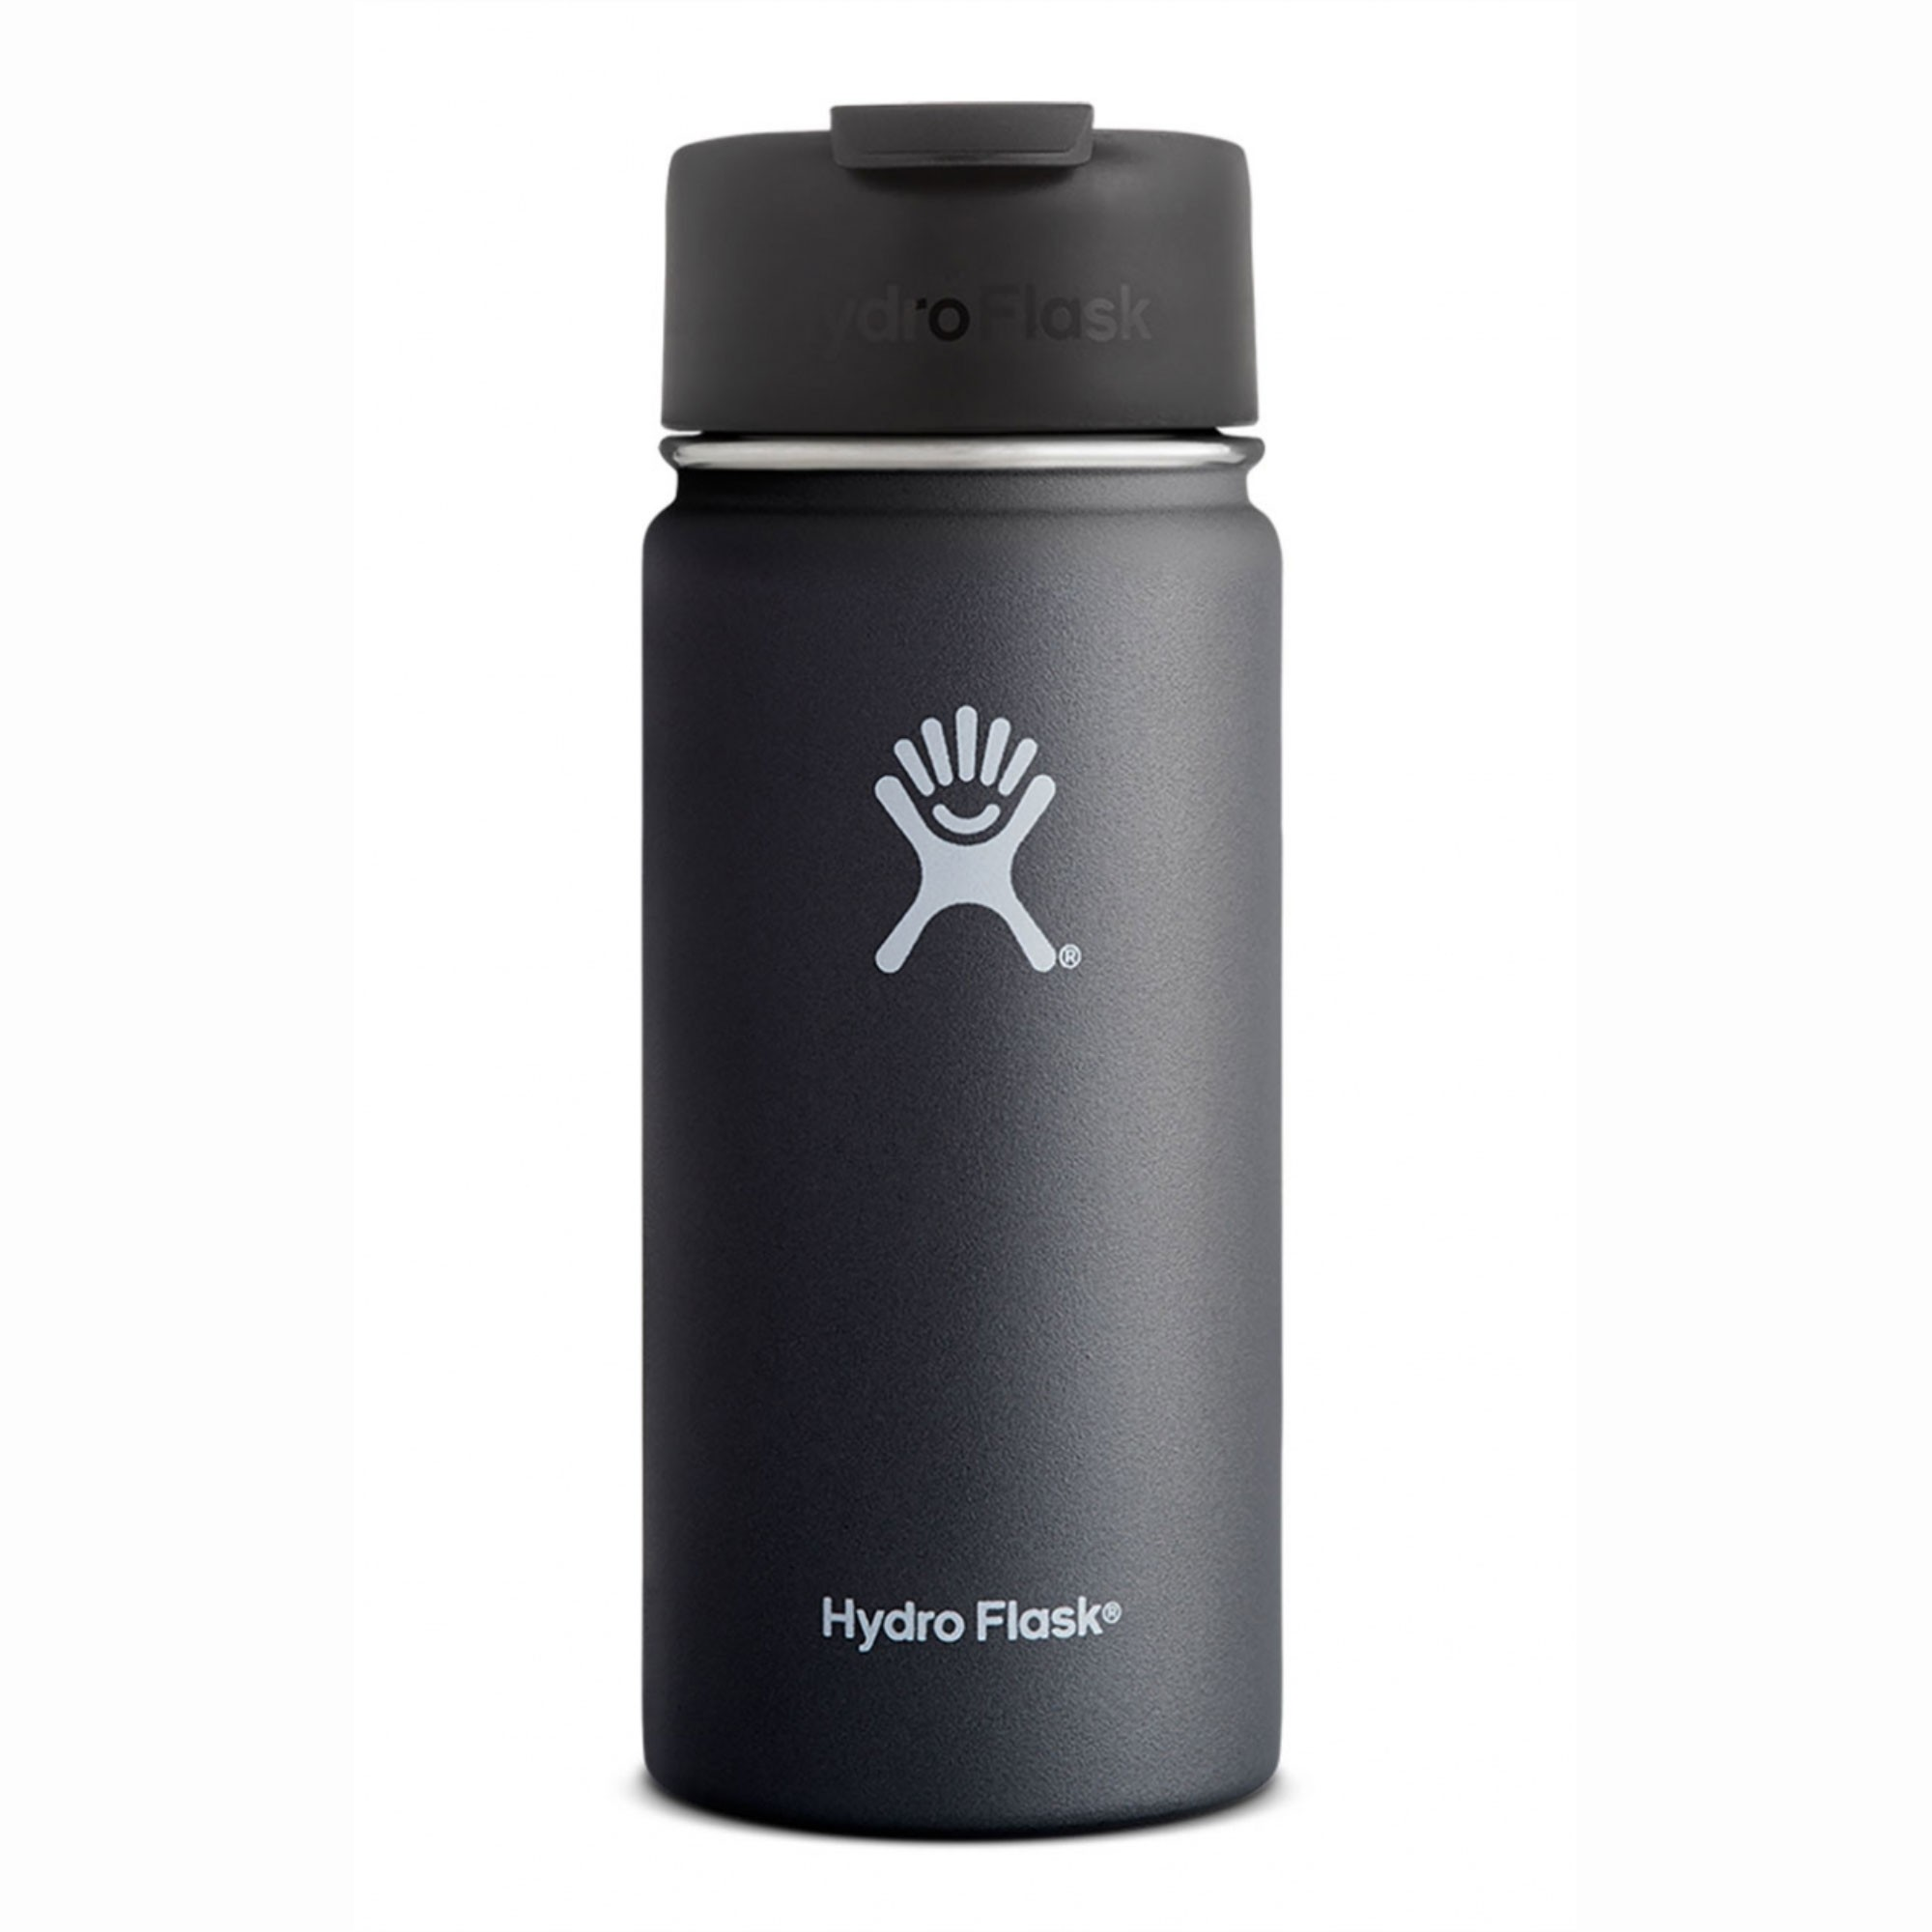 HYDRO FLASK - 16oz Wide Mouth Flask - Black